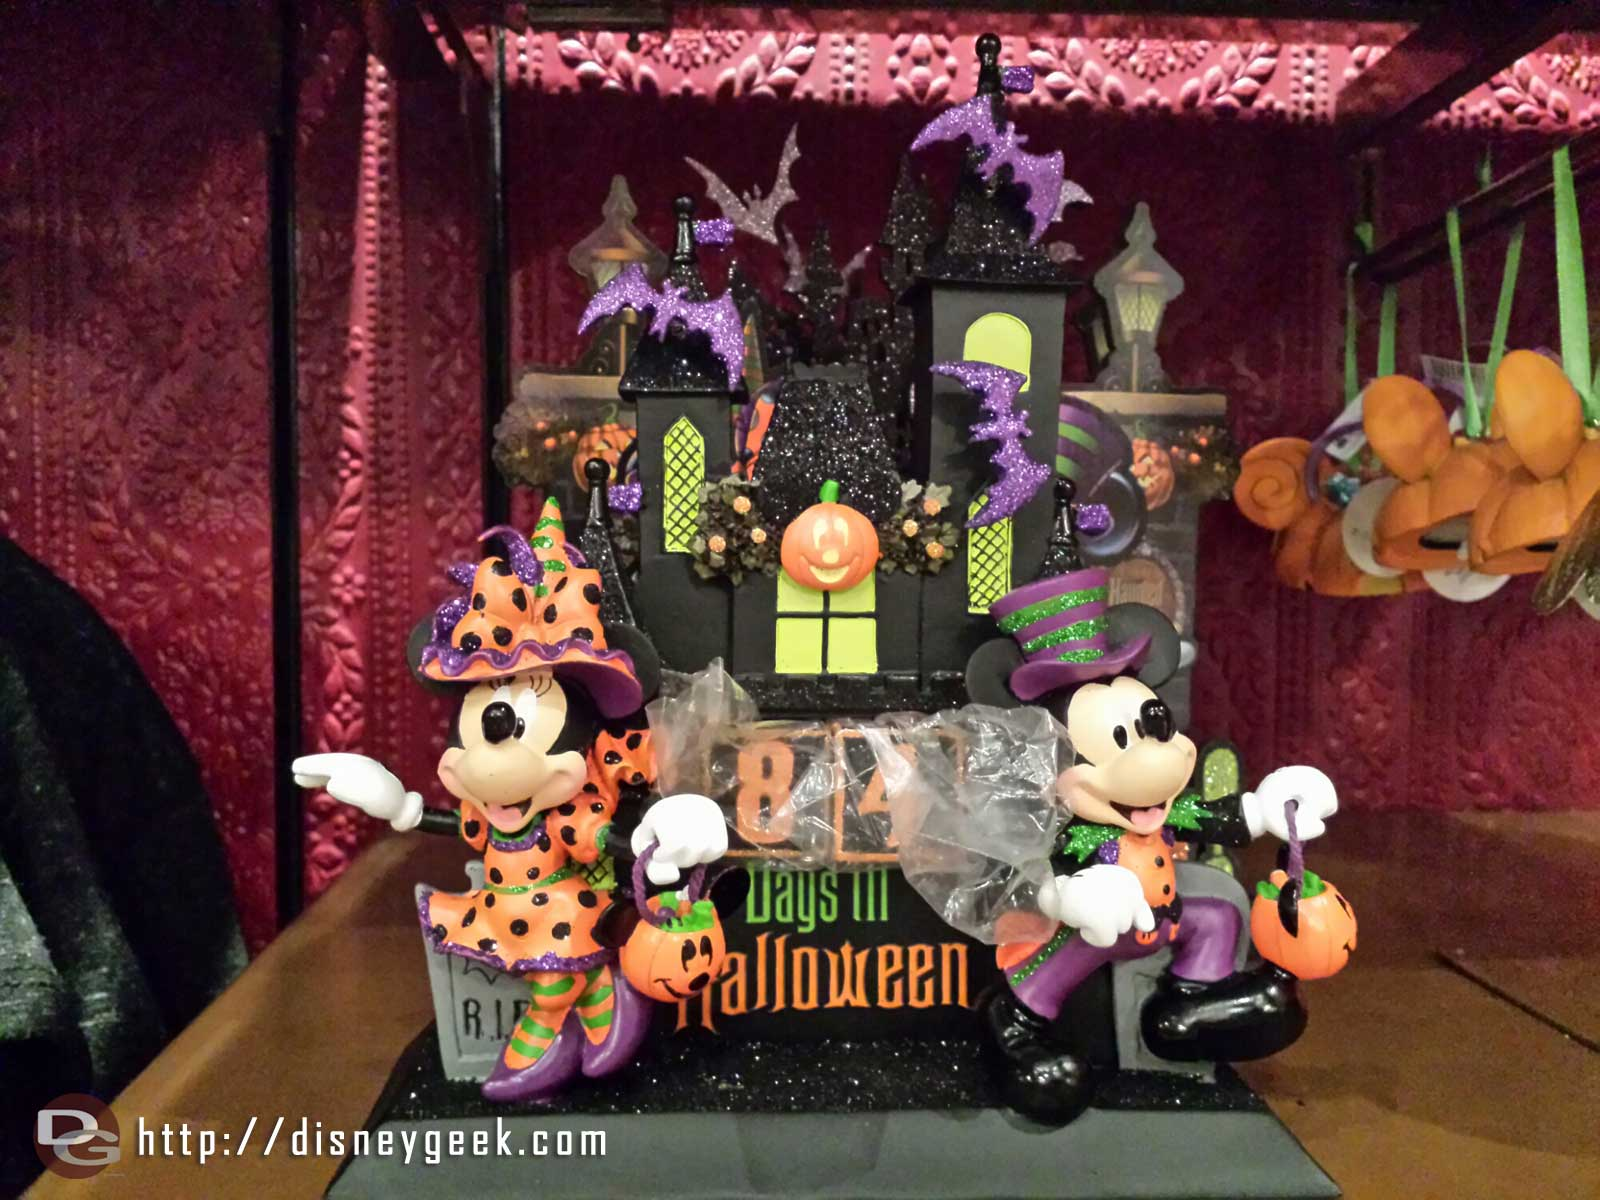 Halloween merchandise is also in the Disney Showcase on Main Street, here is a count down calendar